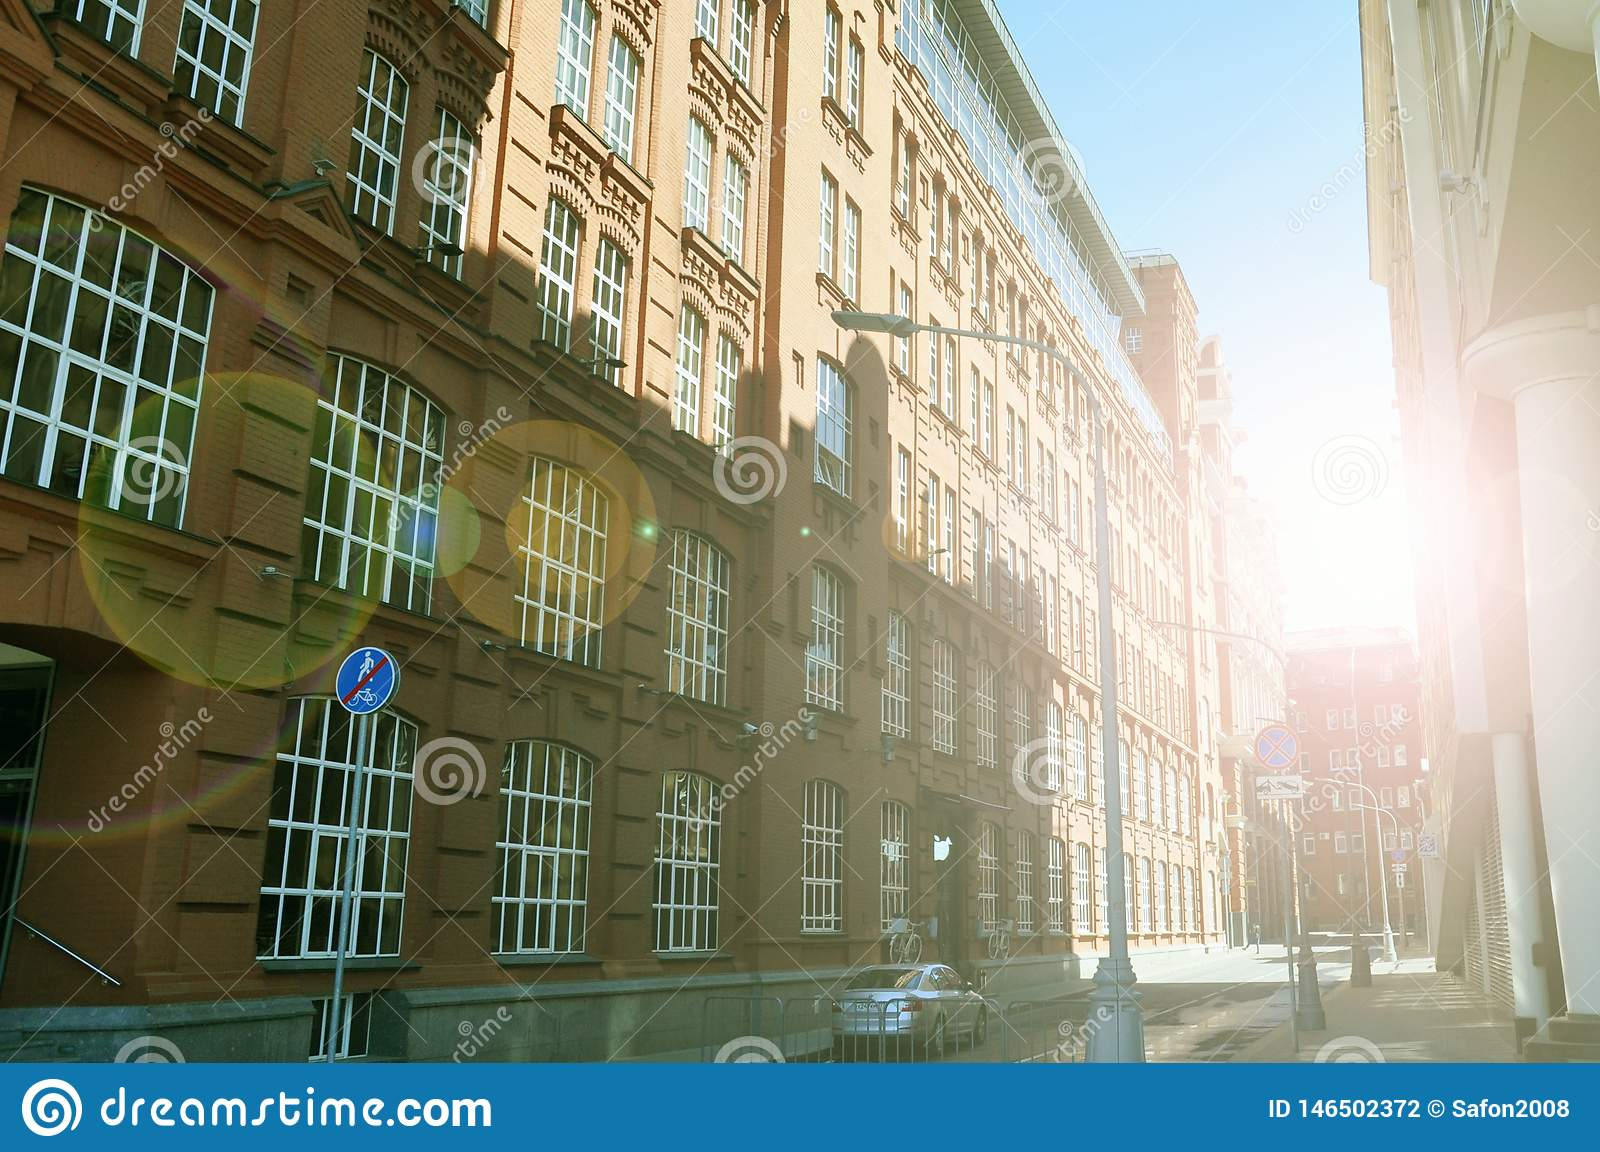 Apartment building on the street flooded with sunlight, Moscow, Russia